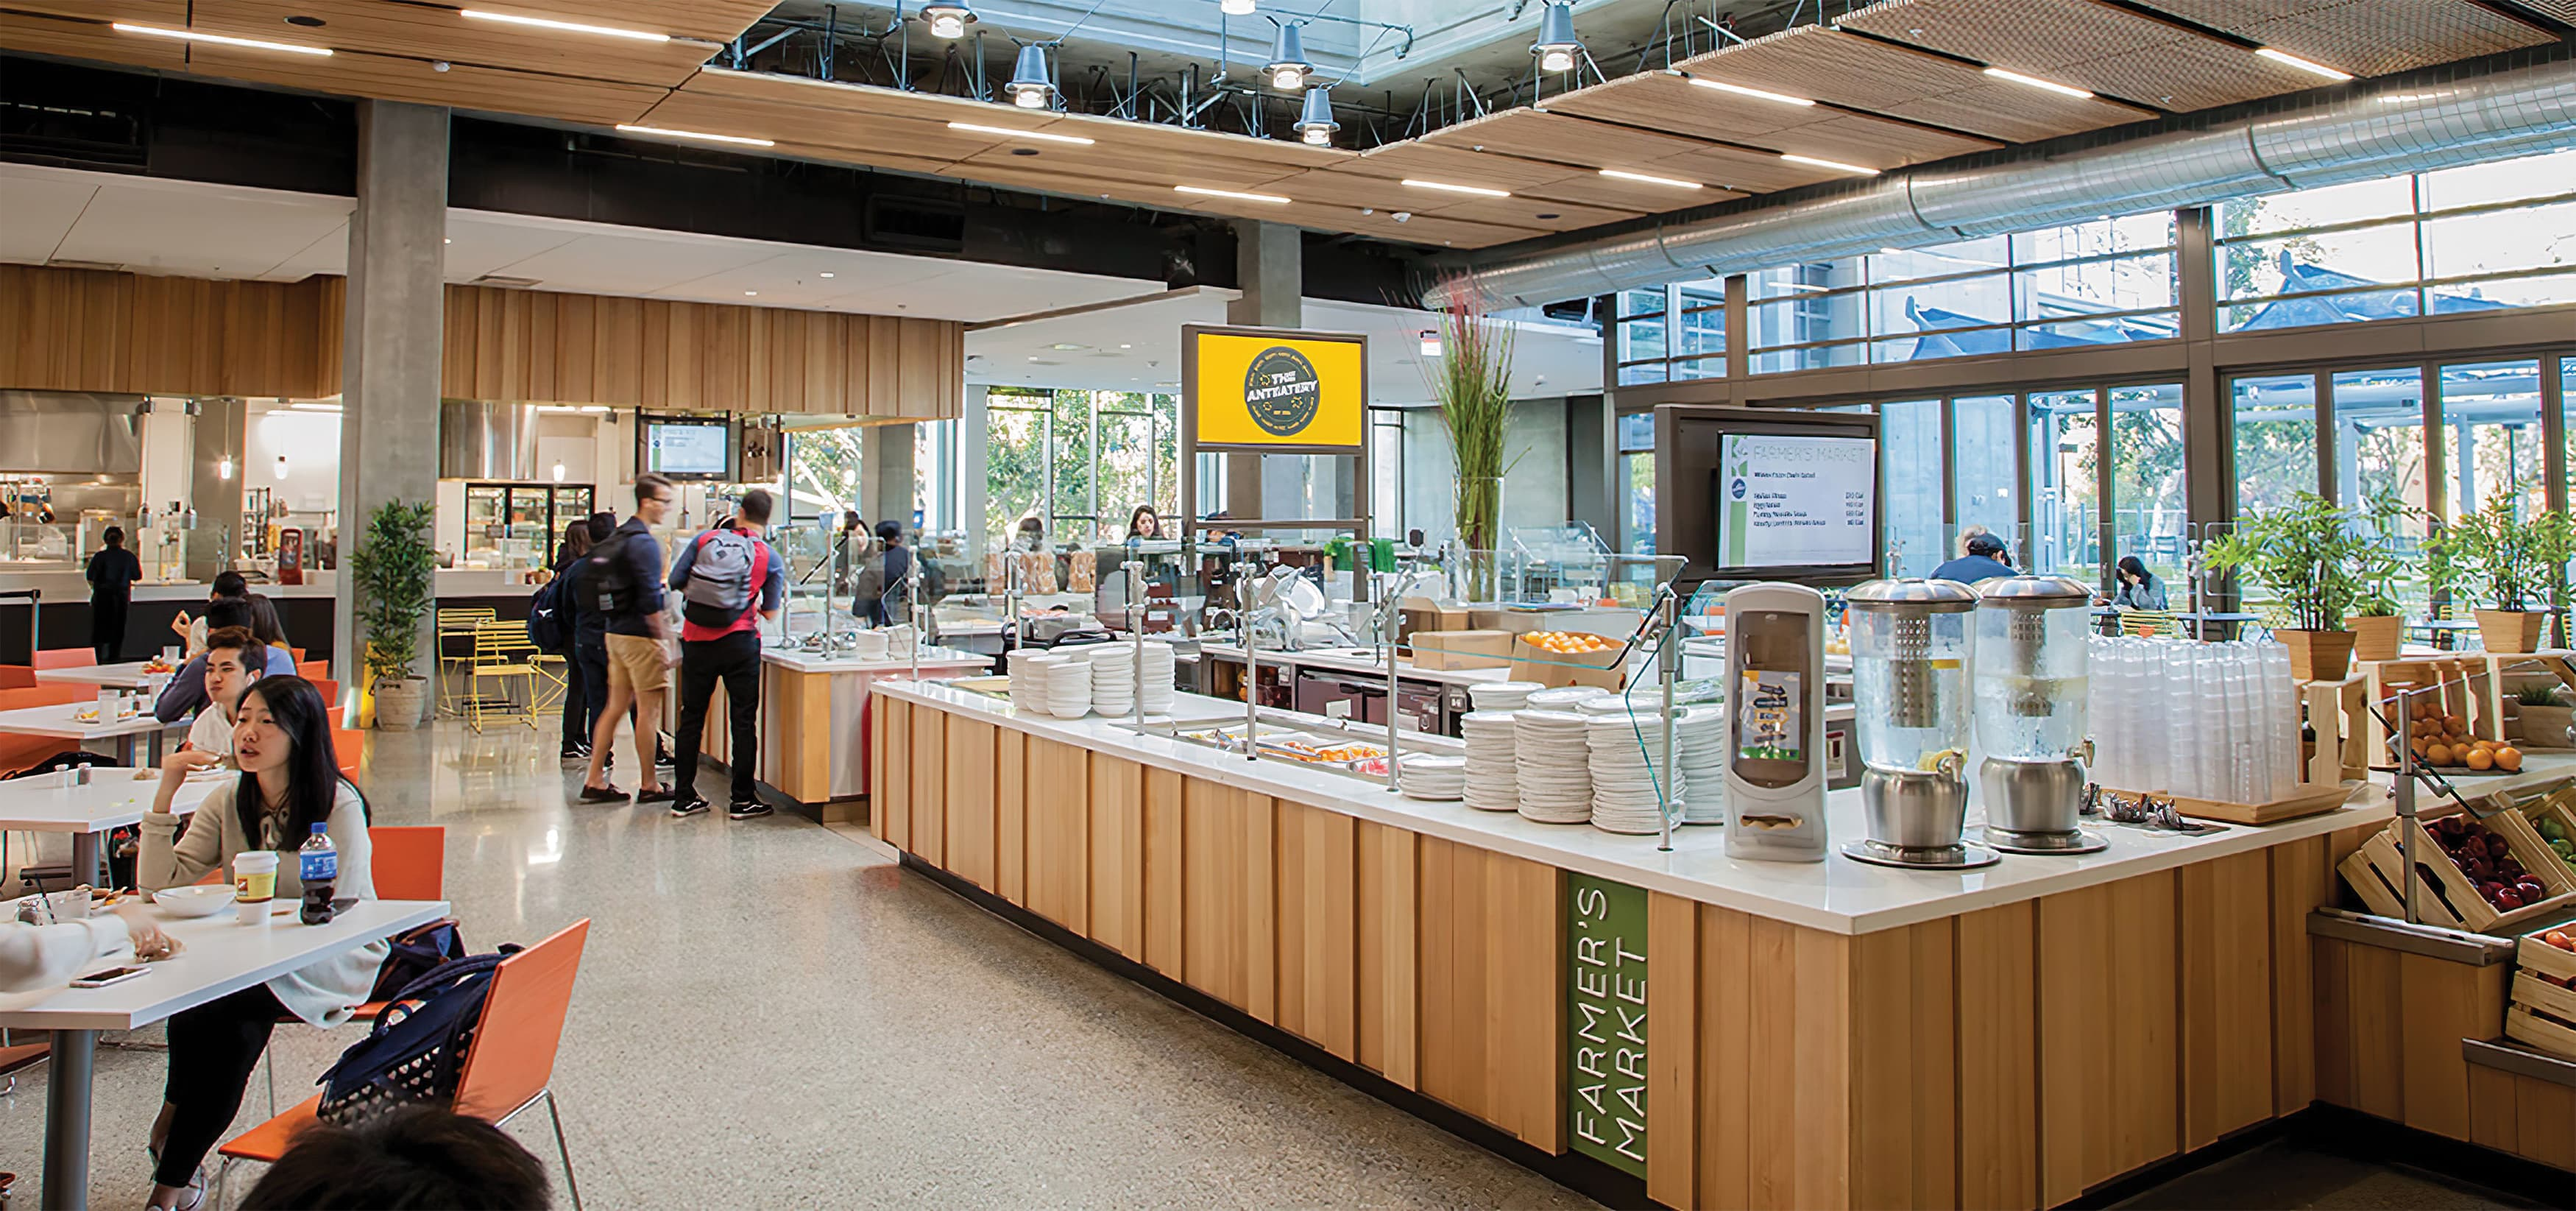 Anteatery Foodhall, the campus dining facility at University of California, Irvine. RSM Design worked to design tenant signage and environmental graphics.